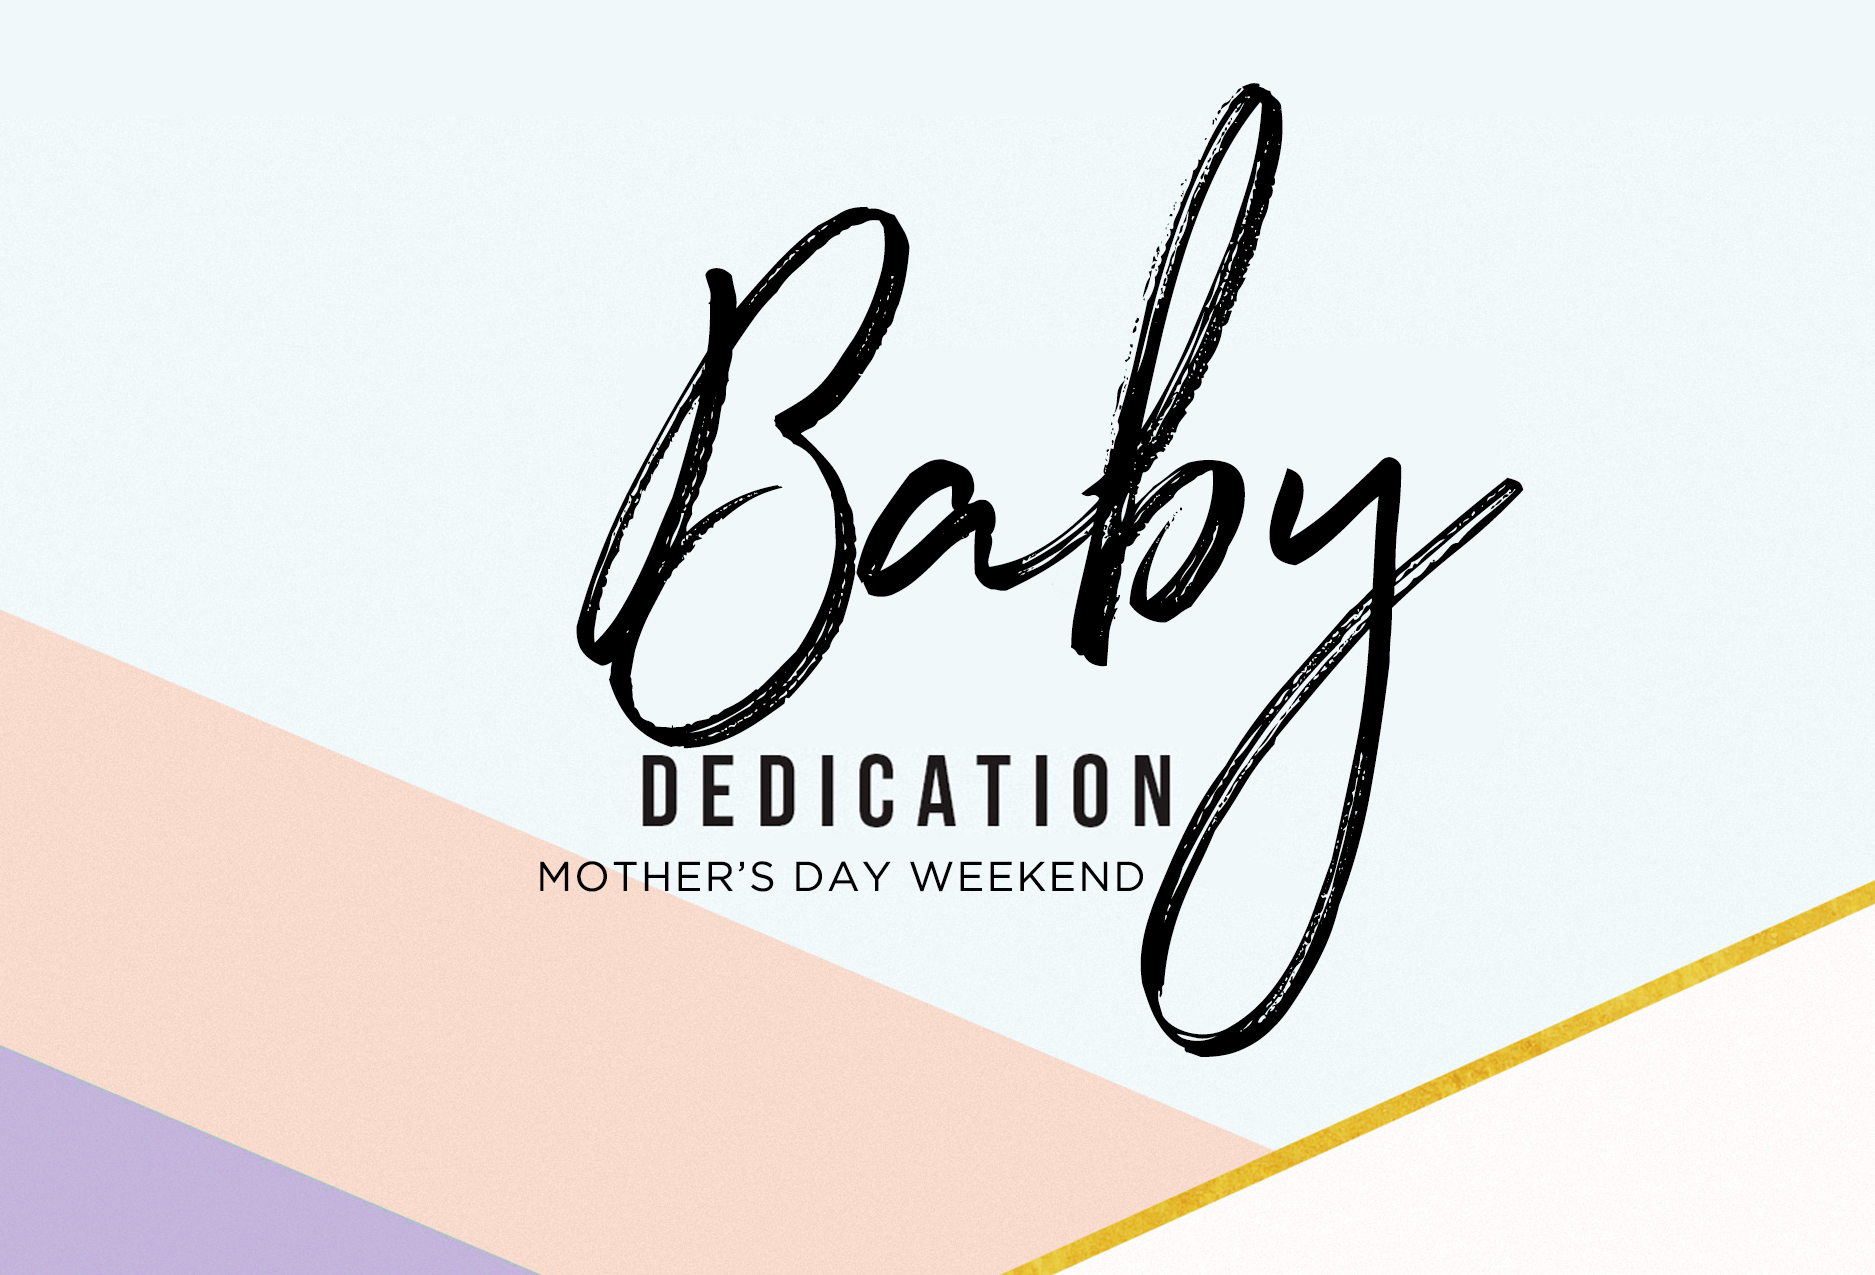 Babydedication may2018